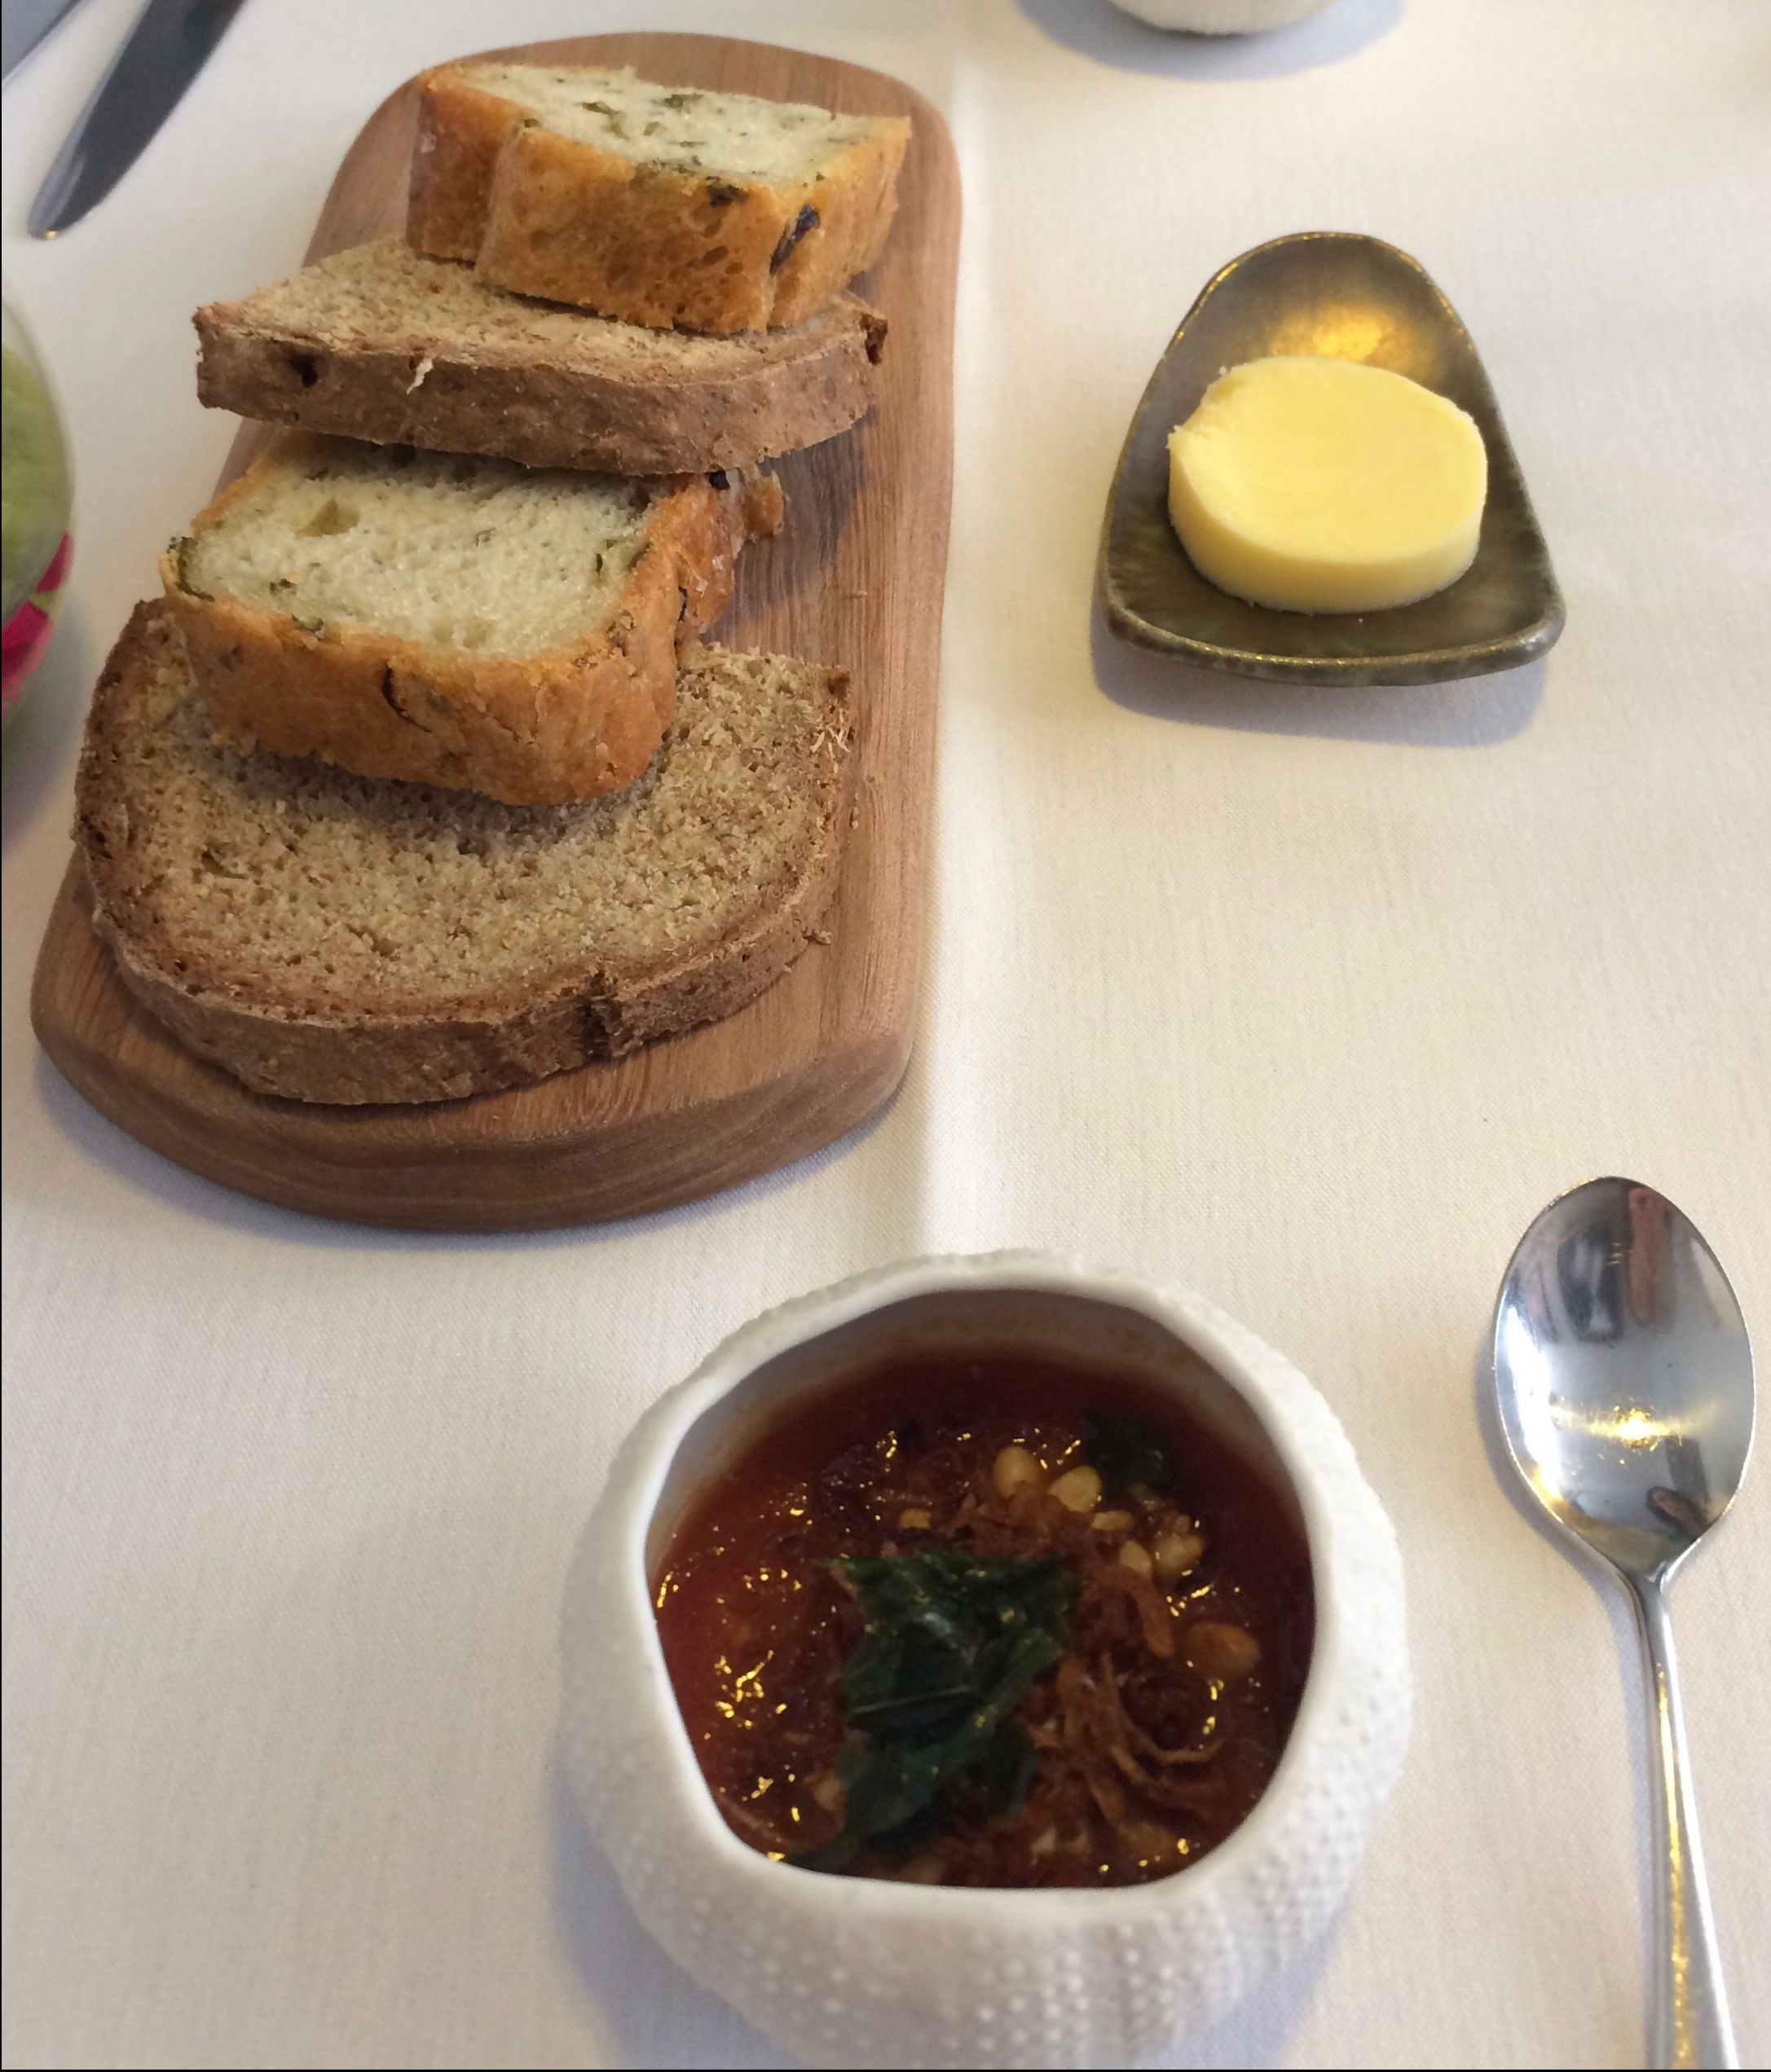 Bread and amuse bouche at Roger Hickman's fine dining restaurant in Norwich